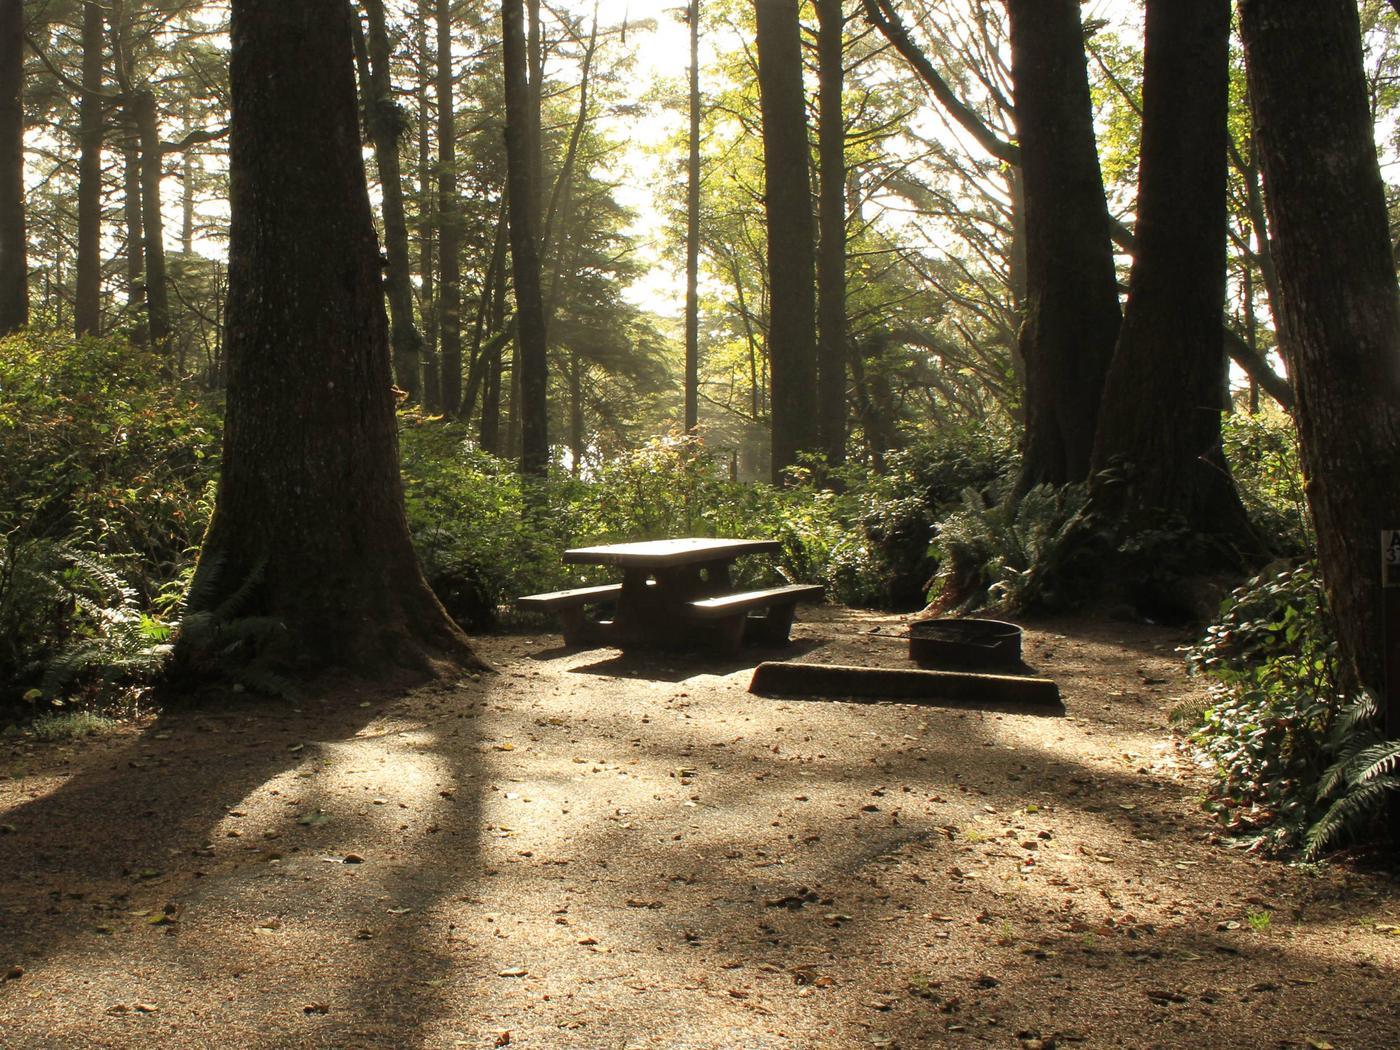 Picture of campsite with picnic table and trees. Campsite A37